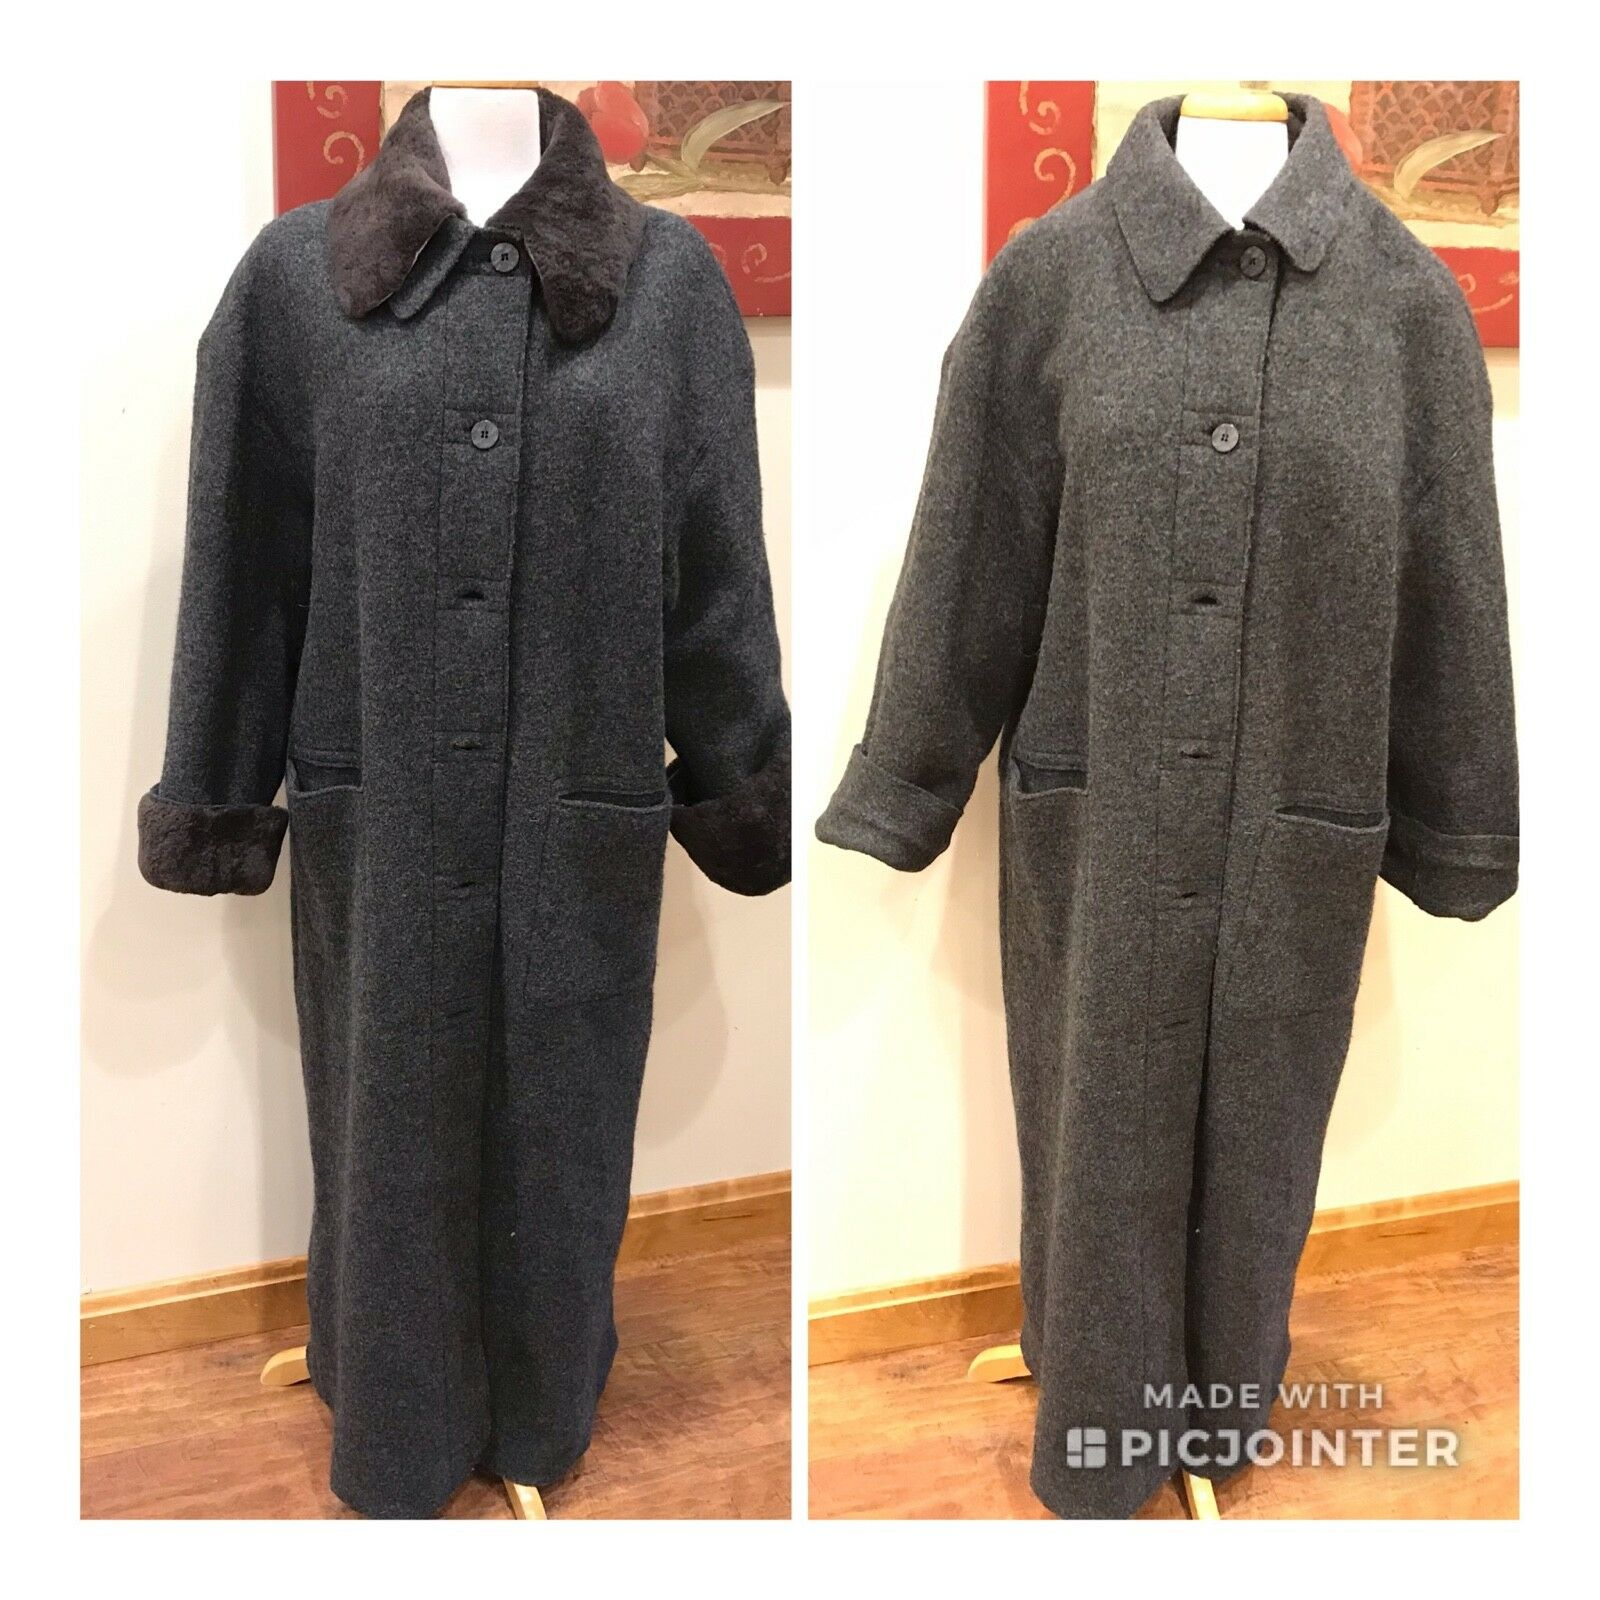 New Hilary Radley Pure Virgin Wool Sweater Coat Faux Fur Collar Removable Liner